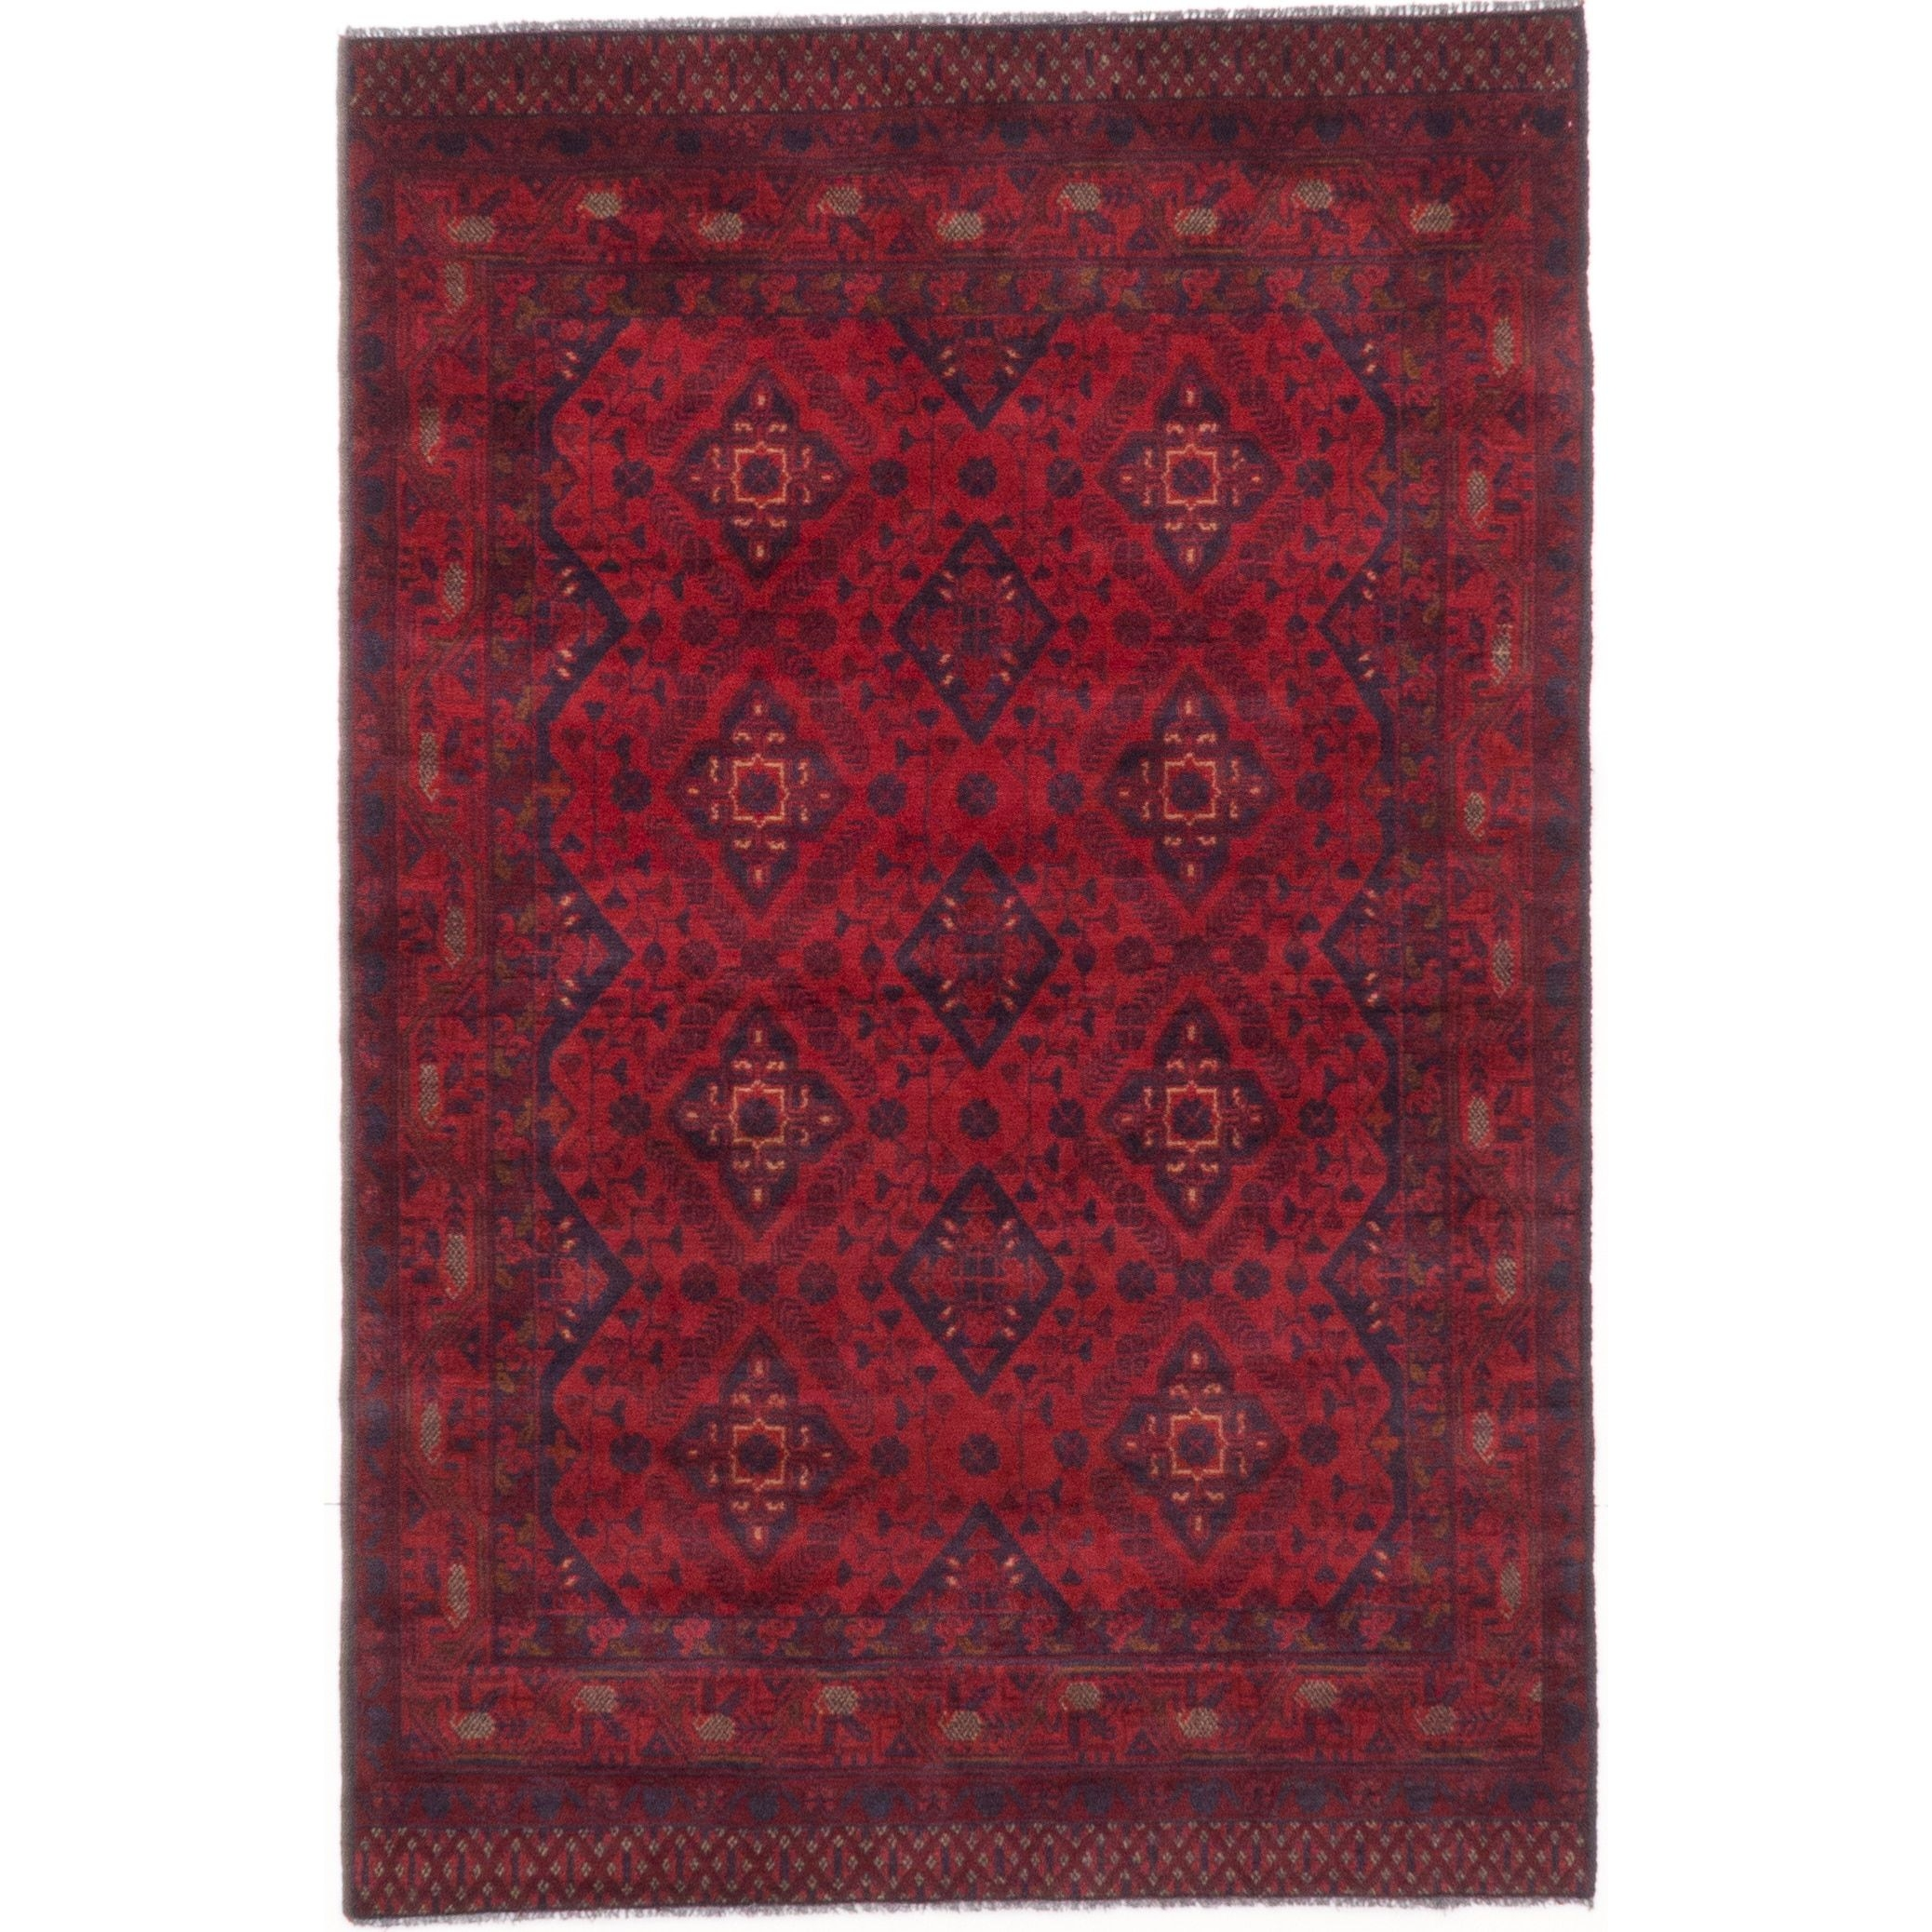 Ecarpetgallery Hand Knotted Finest Khal Mohammadi Red Wool Rug 4 Pertaining To Red Wool Rugs (View 9 of 15)